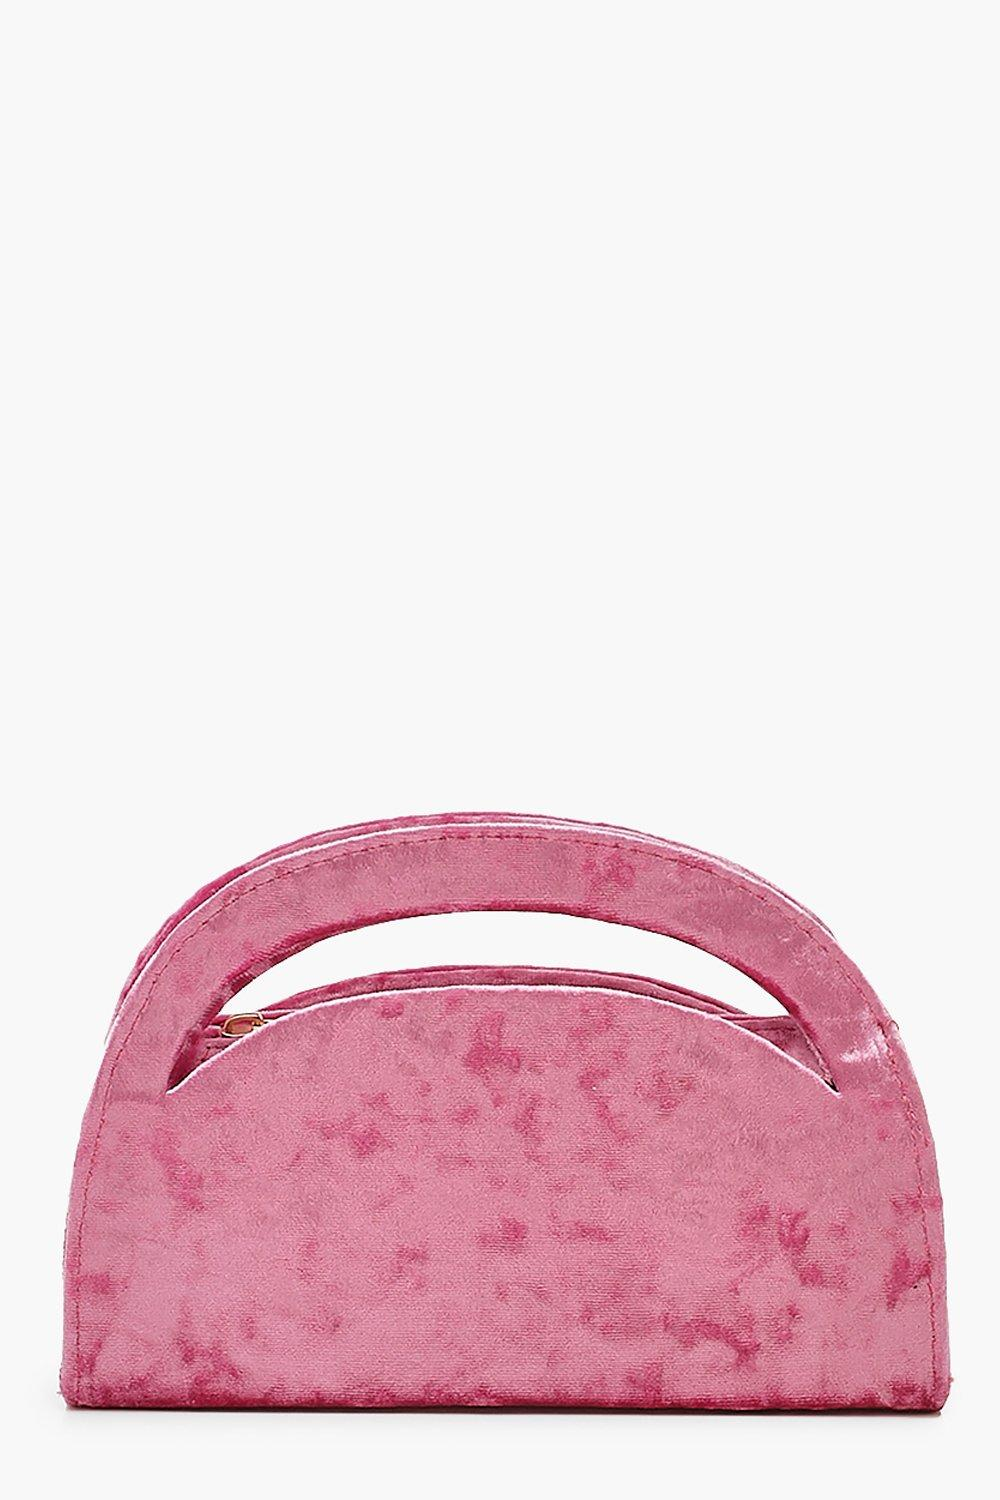 boohoo Womens Velvet Structured Handle Clutch Bag & Chain - Pink - One Size, Pink